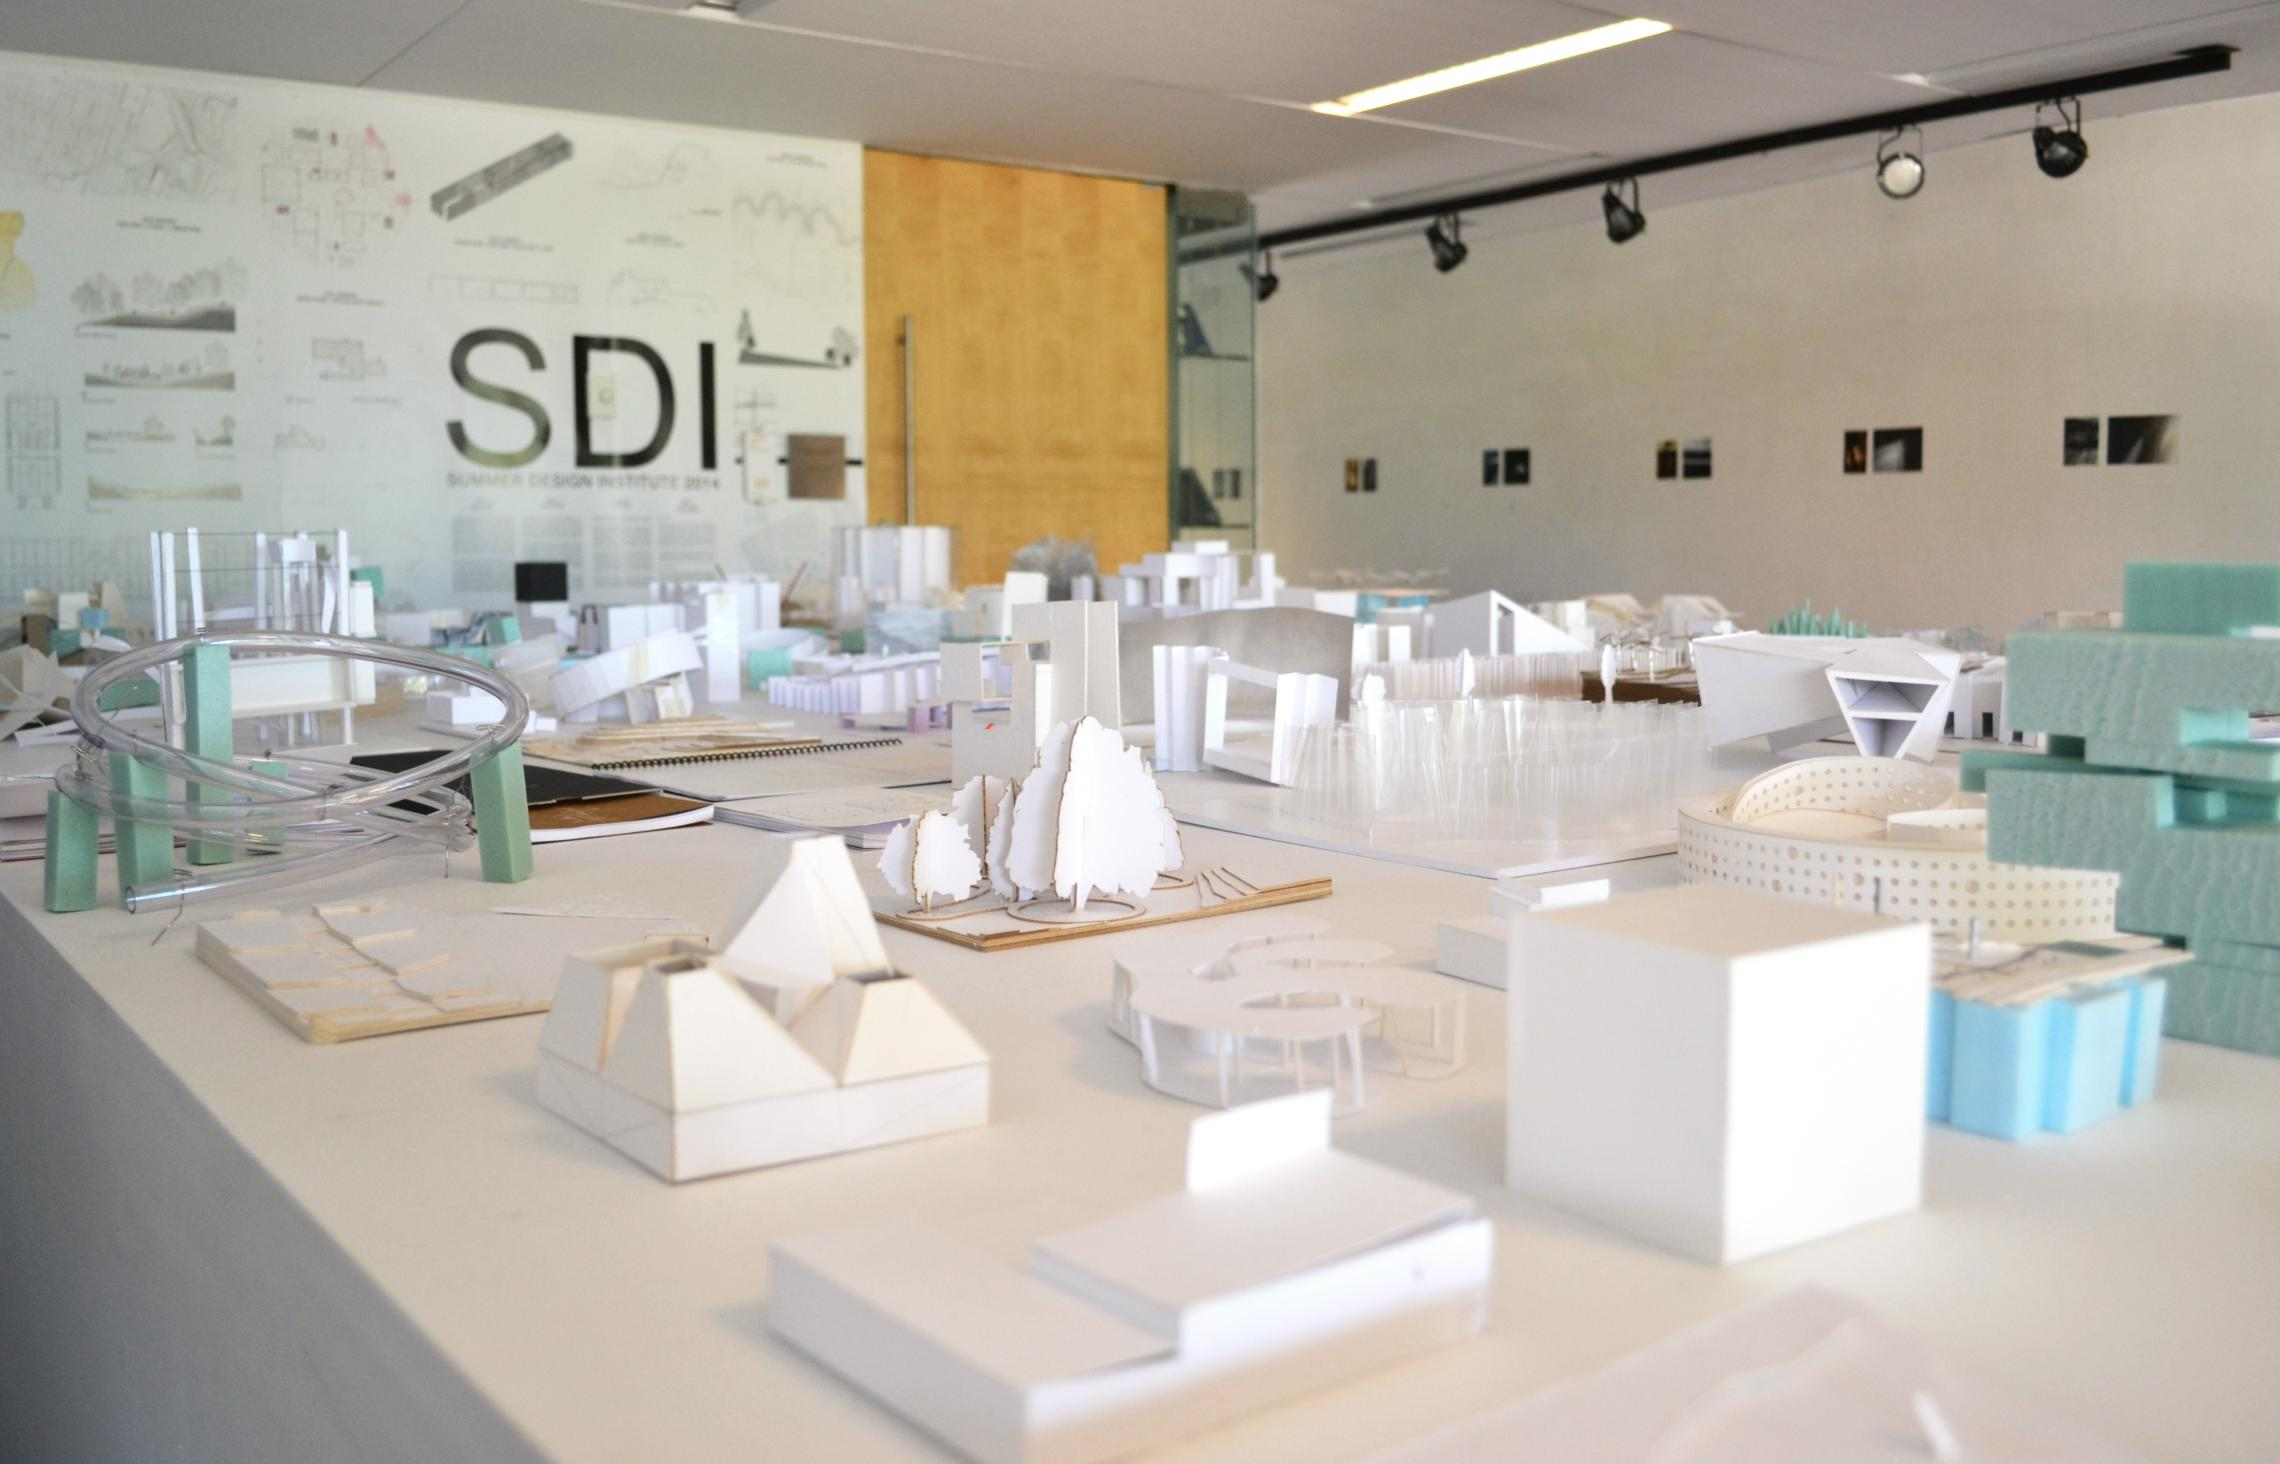 U Architecture School Programs Ranked In Top Three Among Public